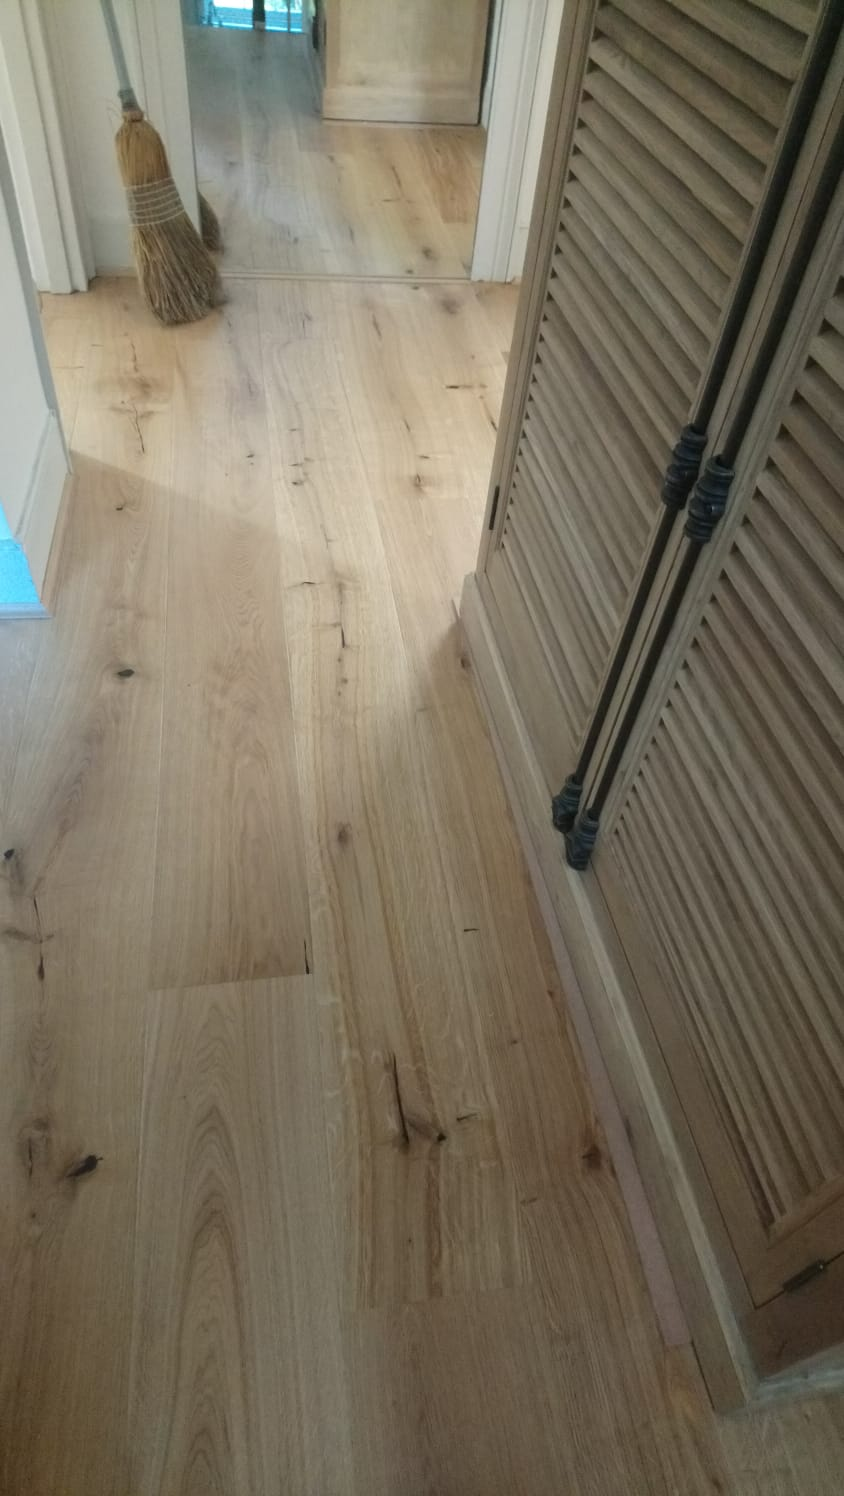 kersaint-cobb-wood-flooring-treviso-marylebone